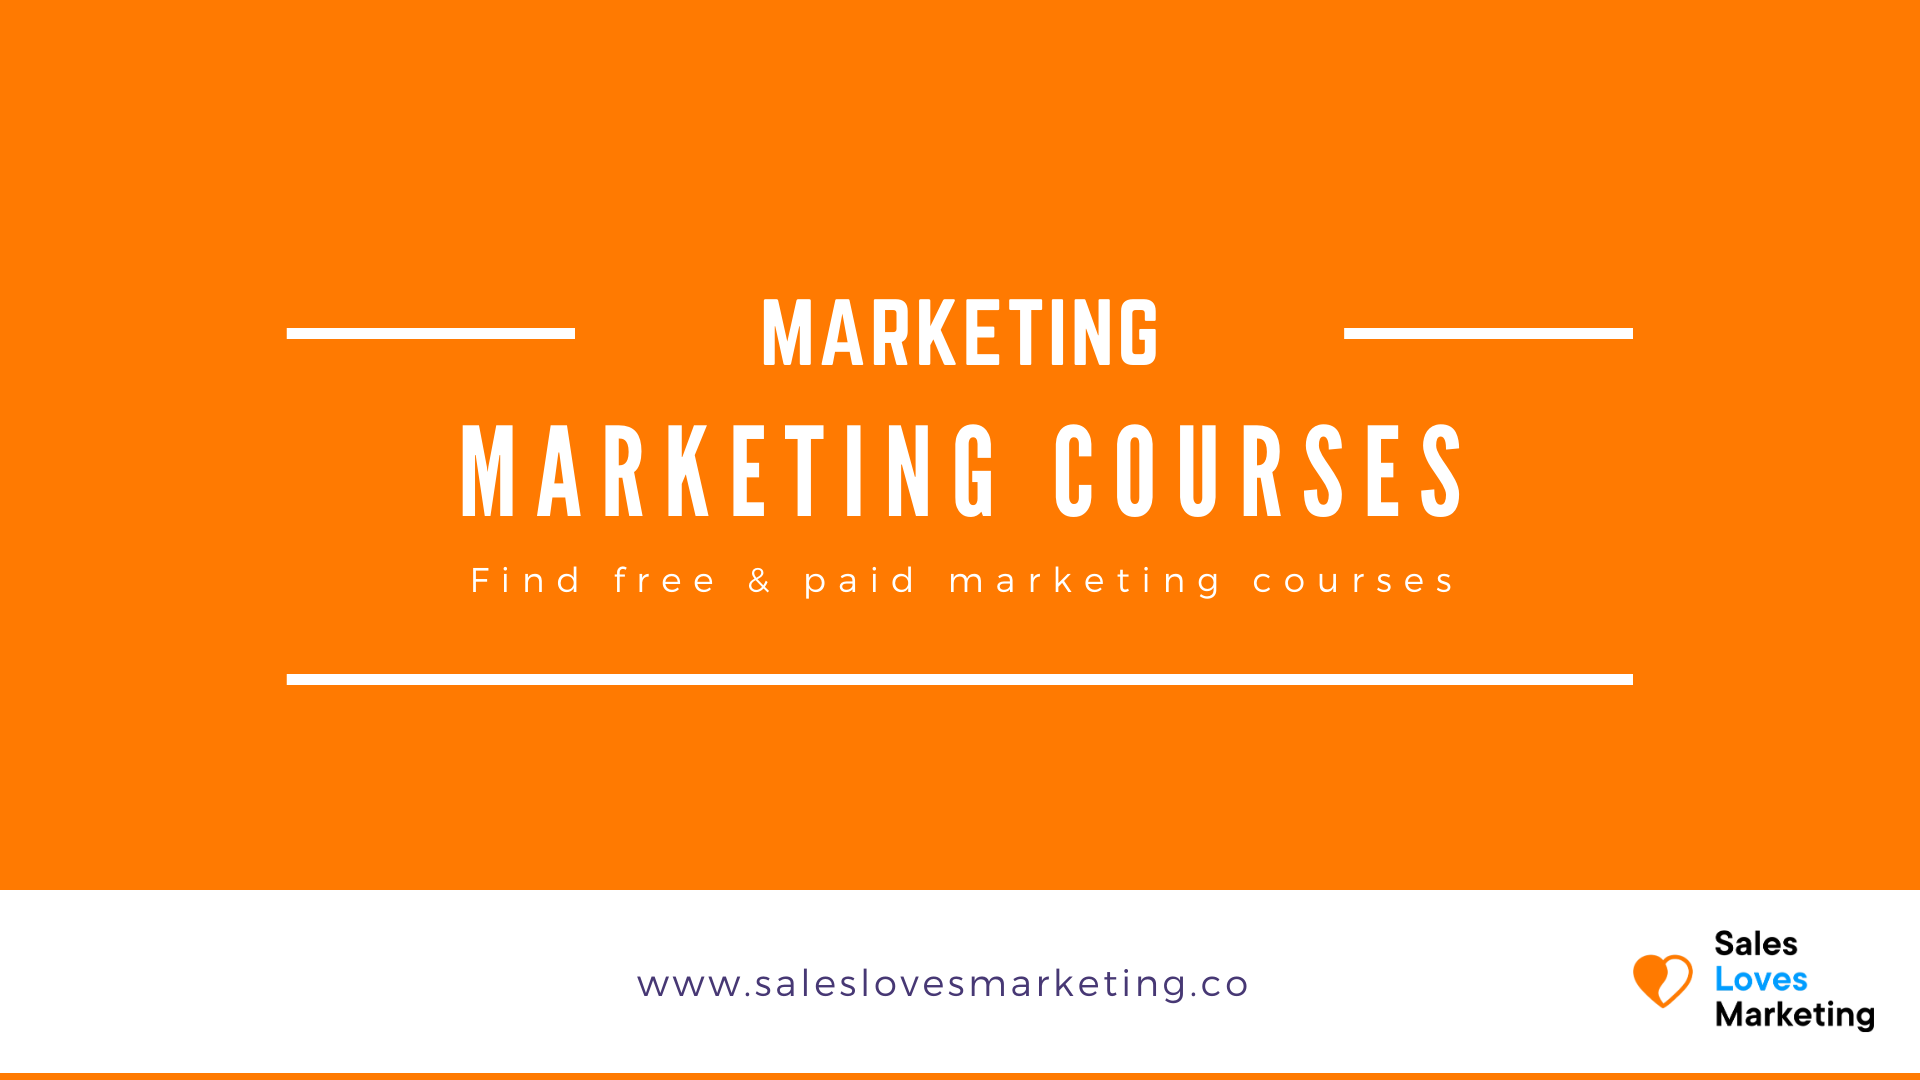 See all the free and paid marketing course on one page